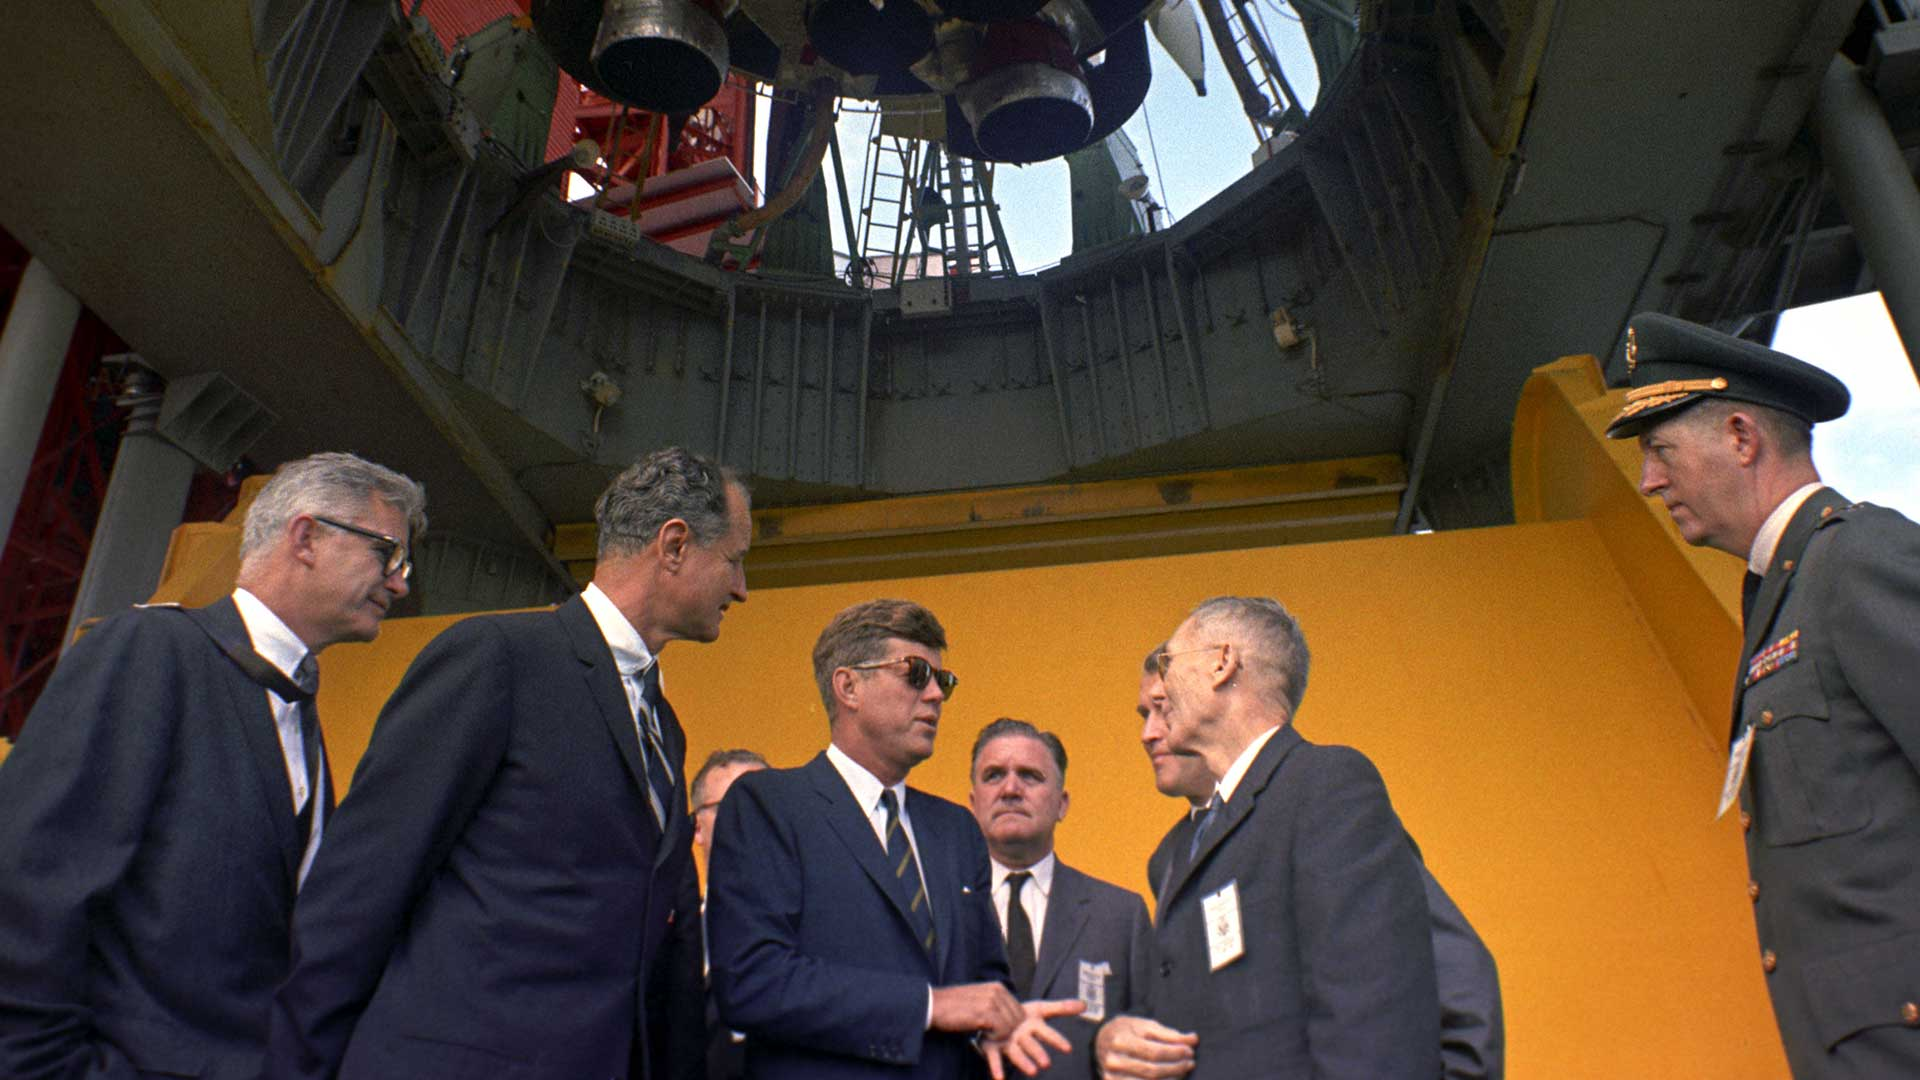 President John F. Kennedy (with sunglasses) is briefed by NASA officials at the Saturn rocket at Pad B, Complex 37, Cape Canaveral, Florida.